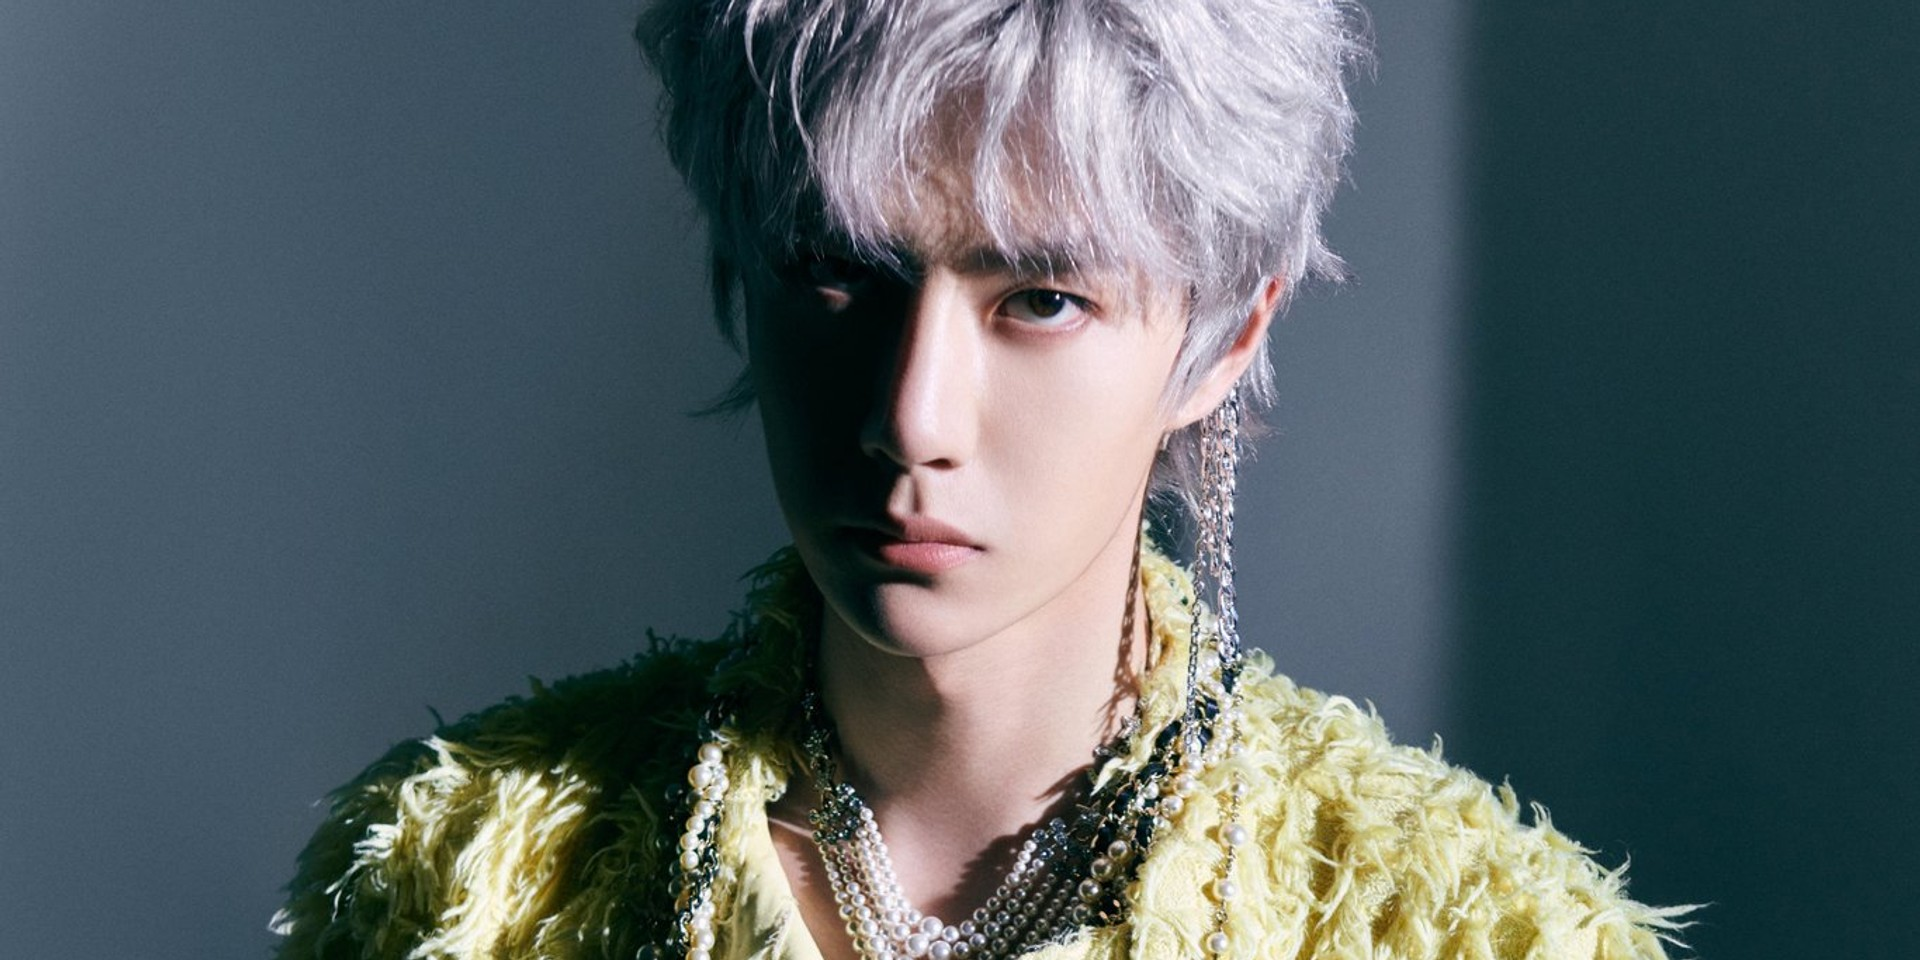 Wang Yibo releases new single, 'The Rules Of My World' – listen